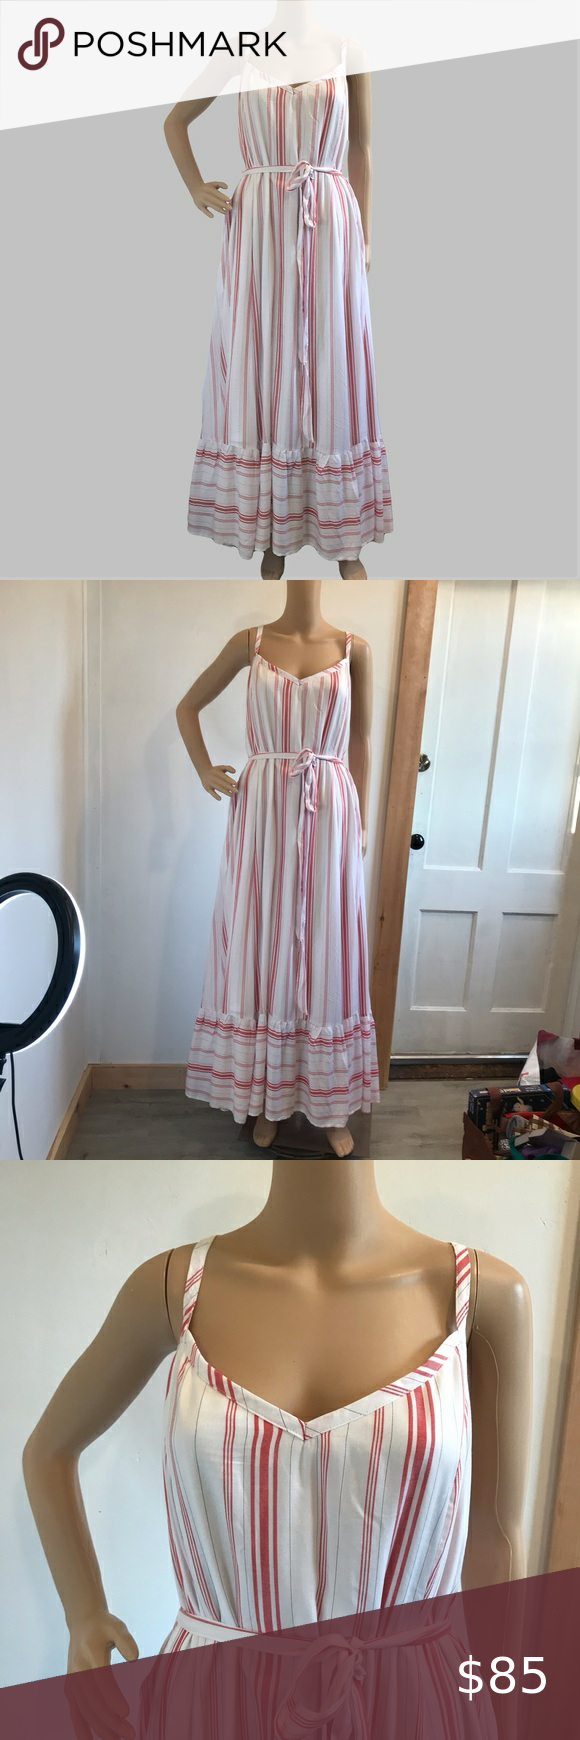 New Torrid White Red Striped Ruffle Maxi Dress 4x See Photos For More Info White With Red Stripe Details T Ruffled Maxi Dress Striped Maxi Dresses Maxi Dress [ 1740 x 580 Pixel ]